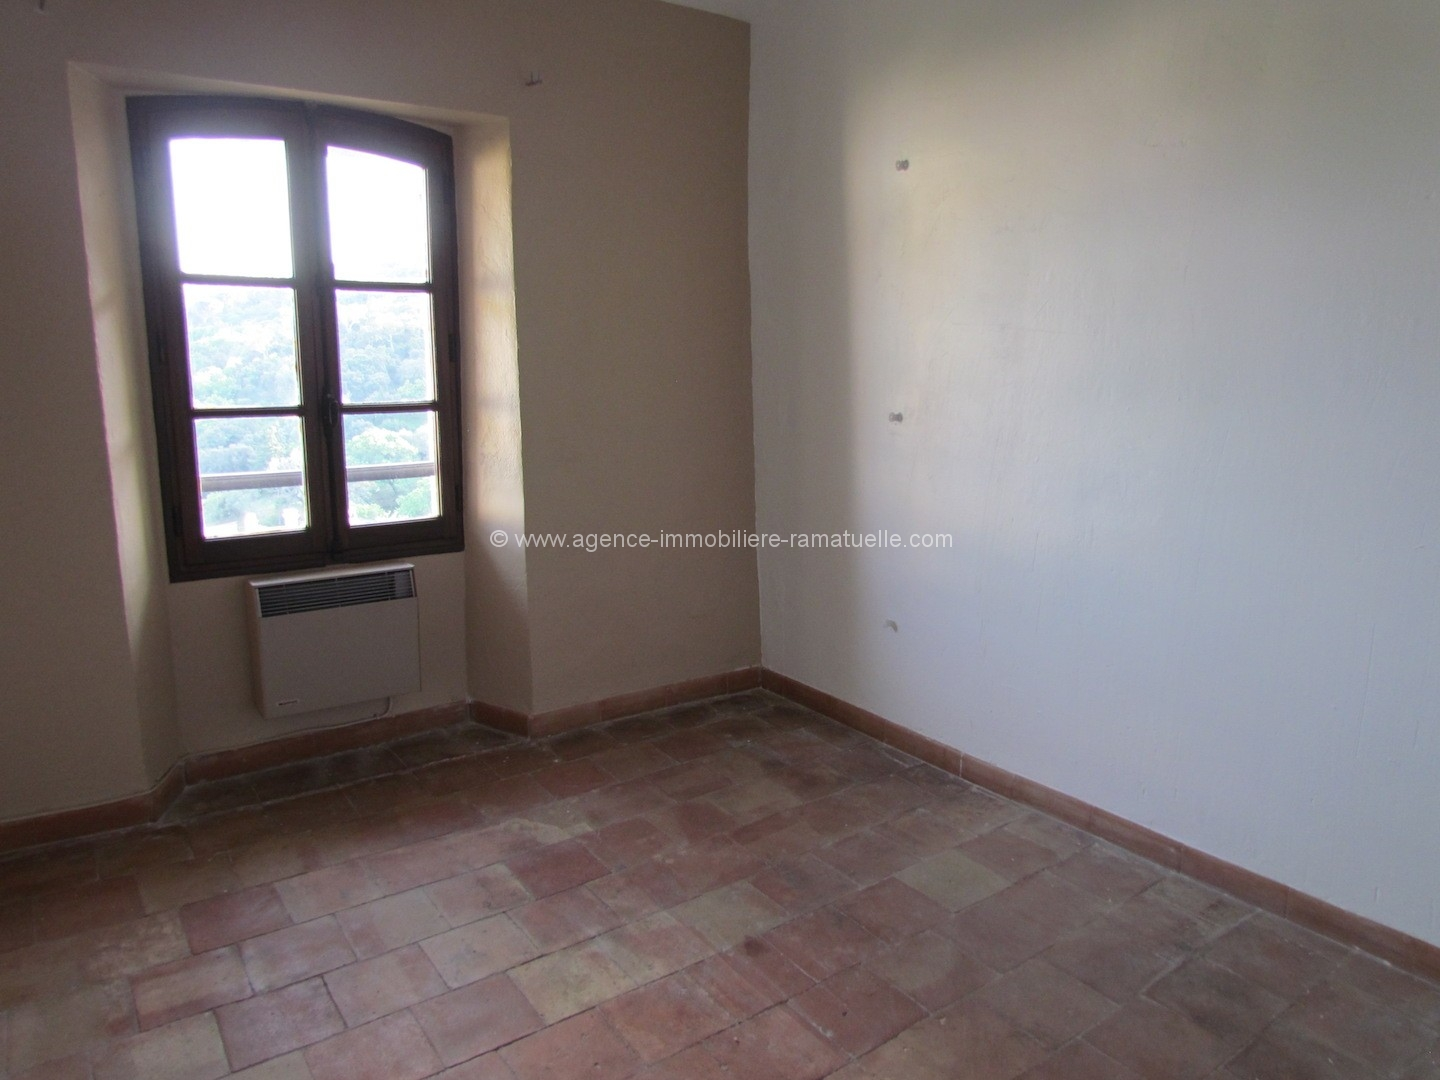 Appartement sous les to ts village ramatuelle agence for Chambre immobiliere